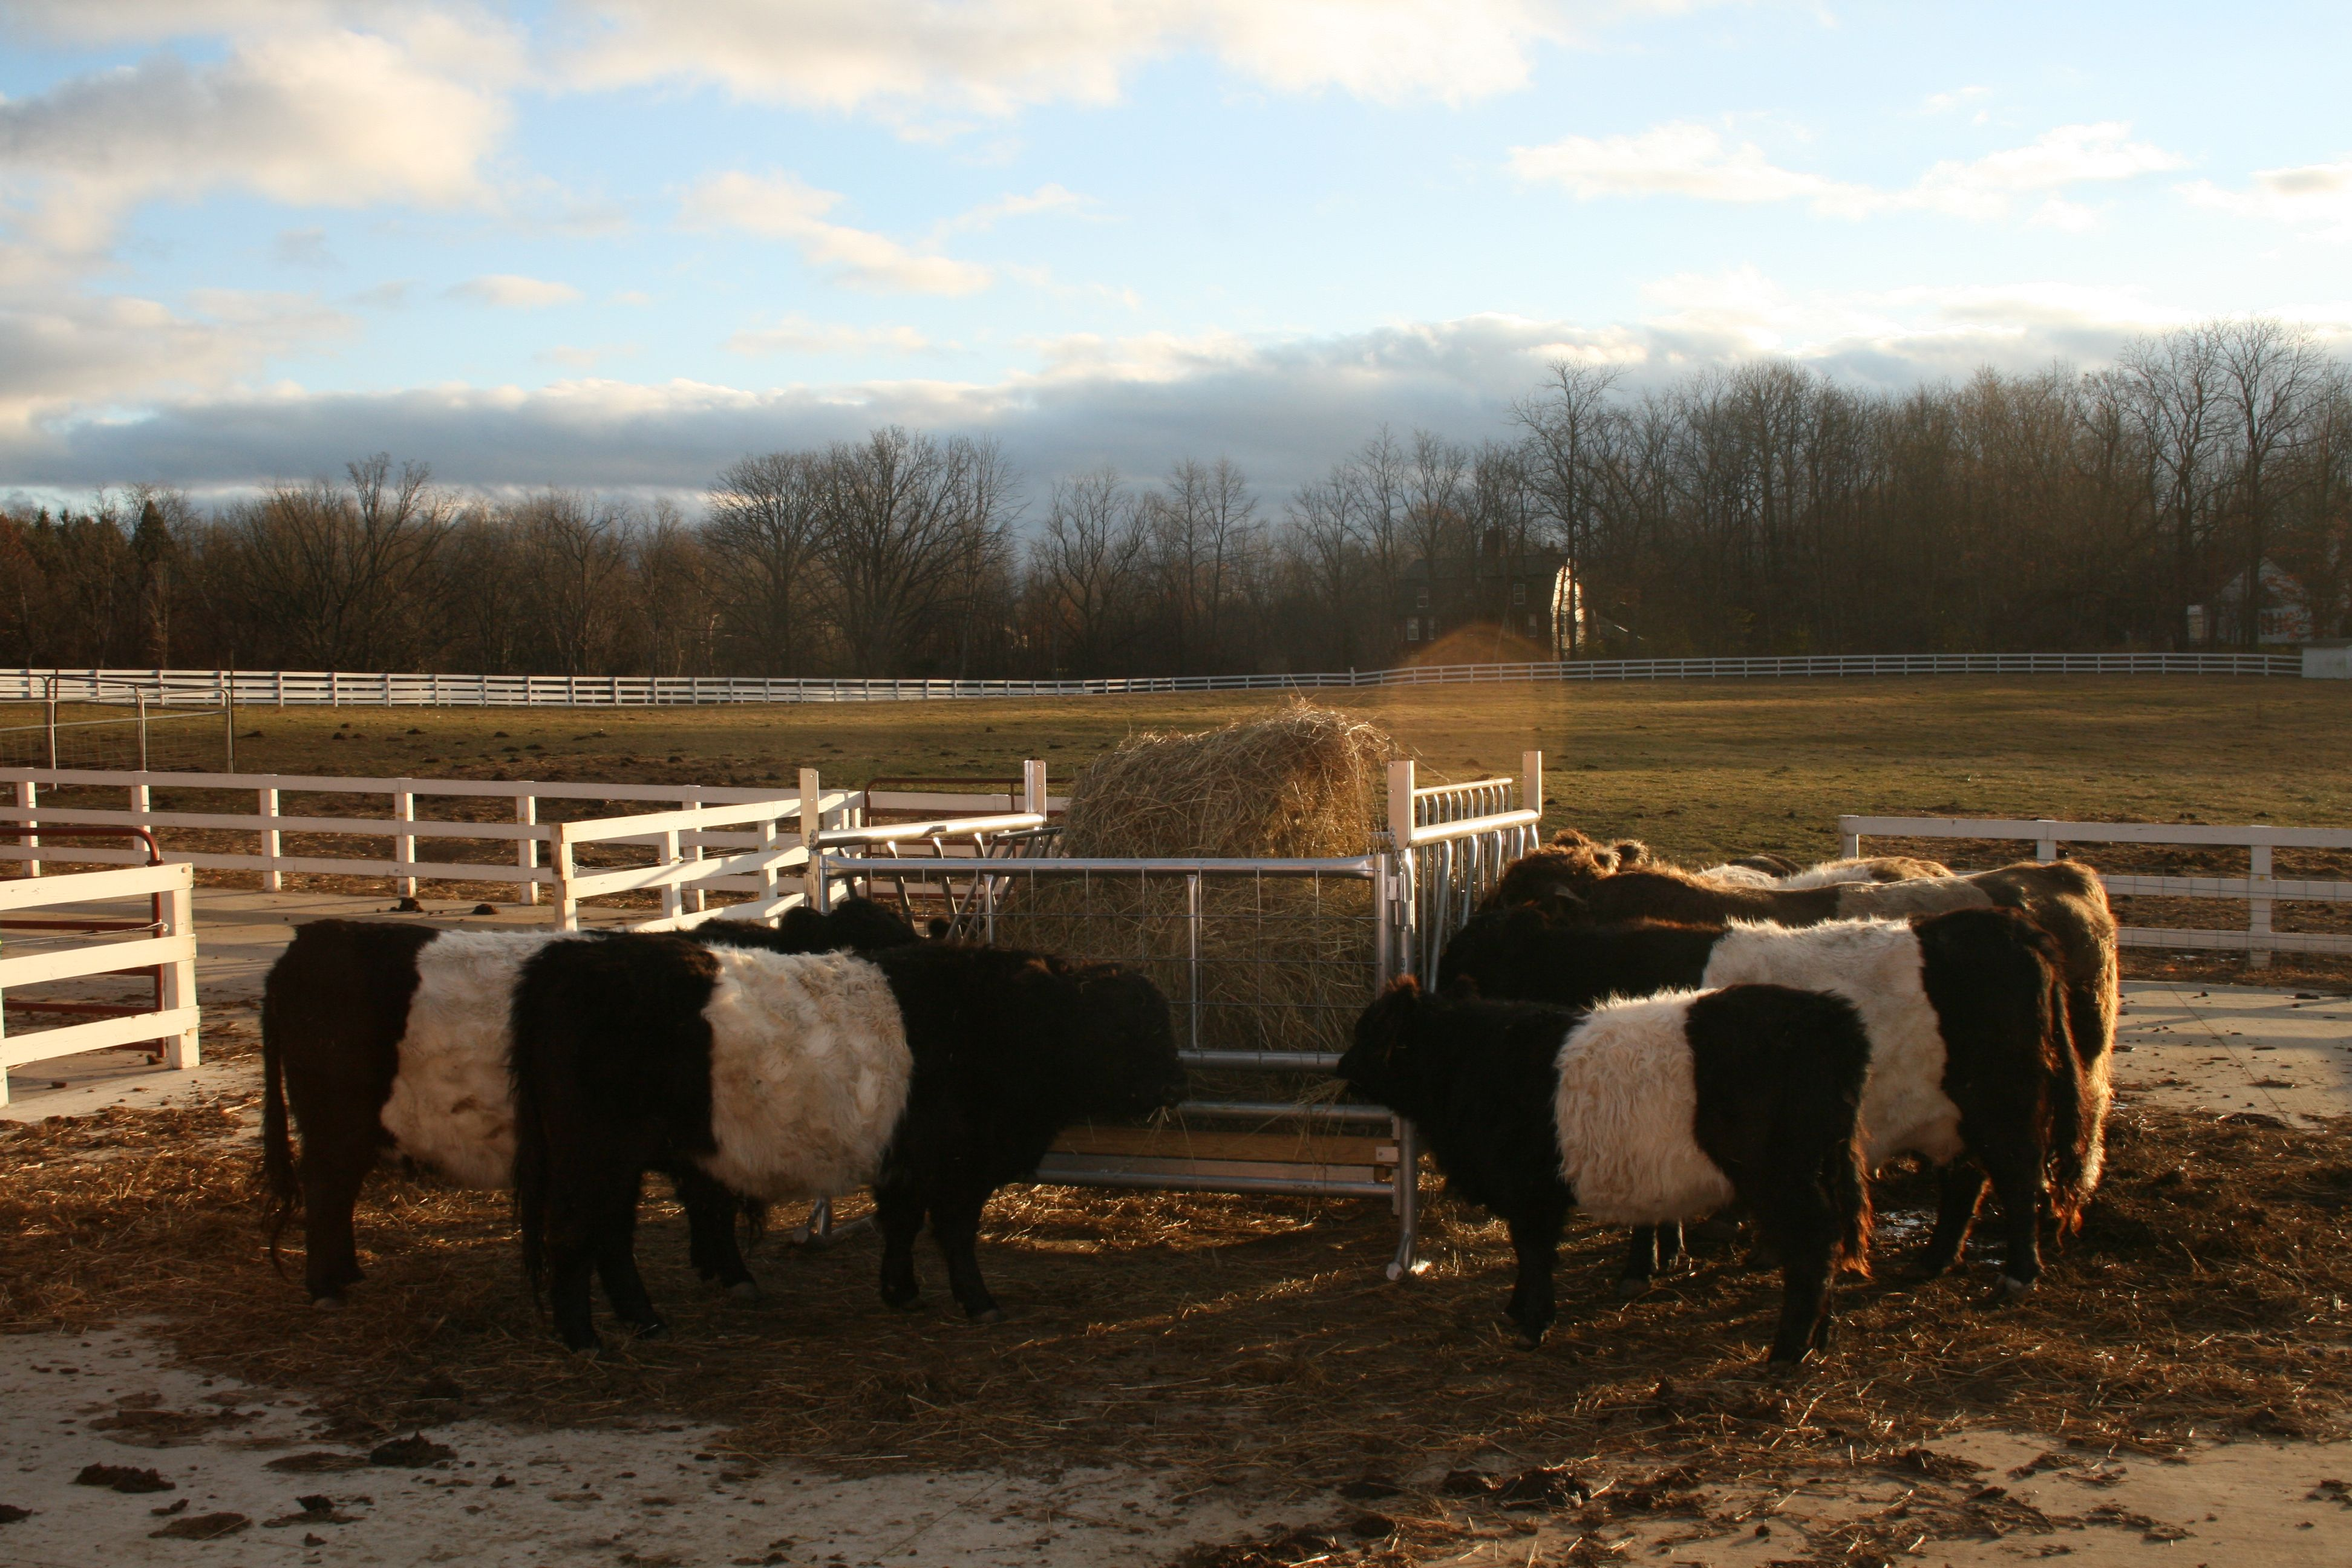 Belted Galloways in winter coats.